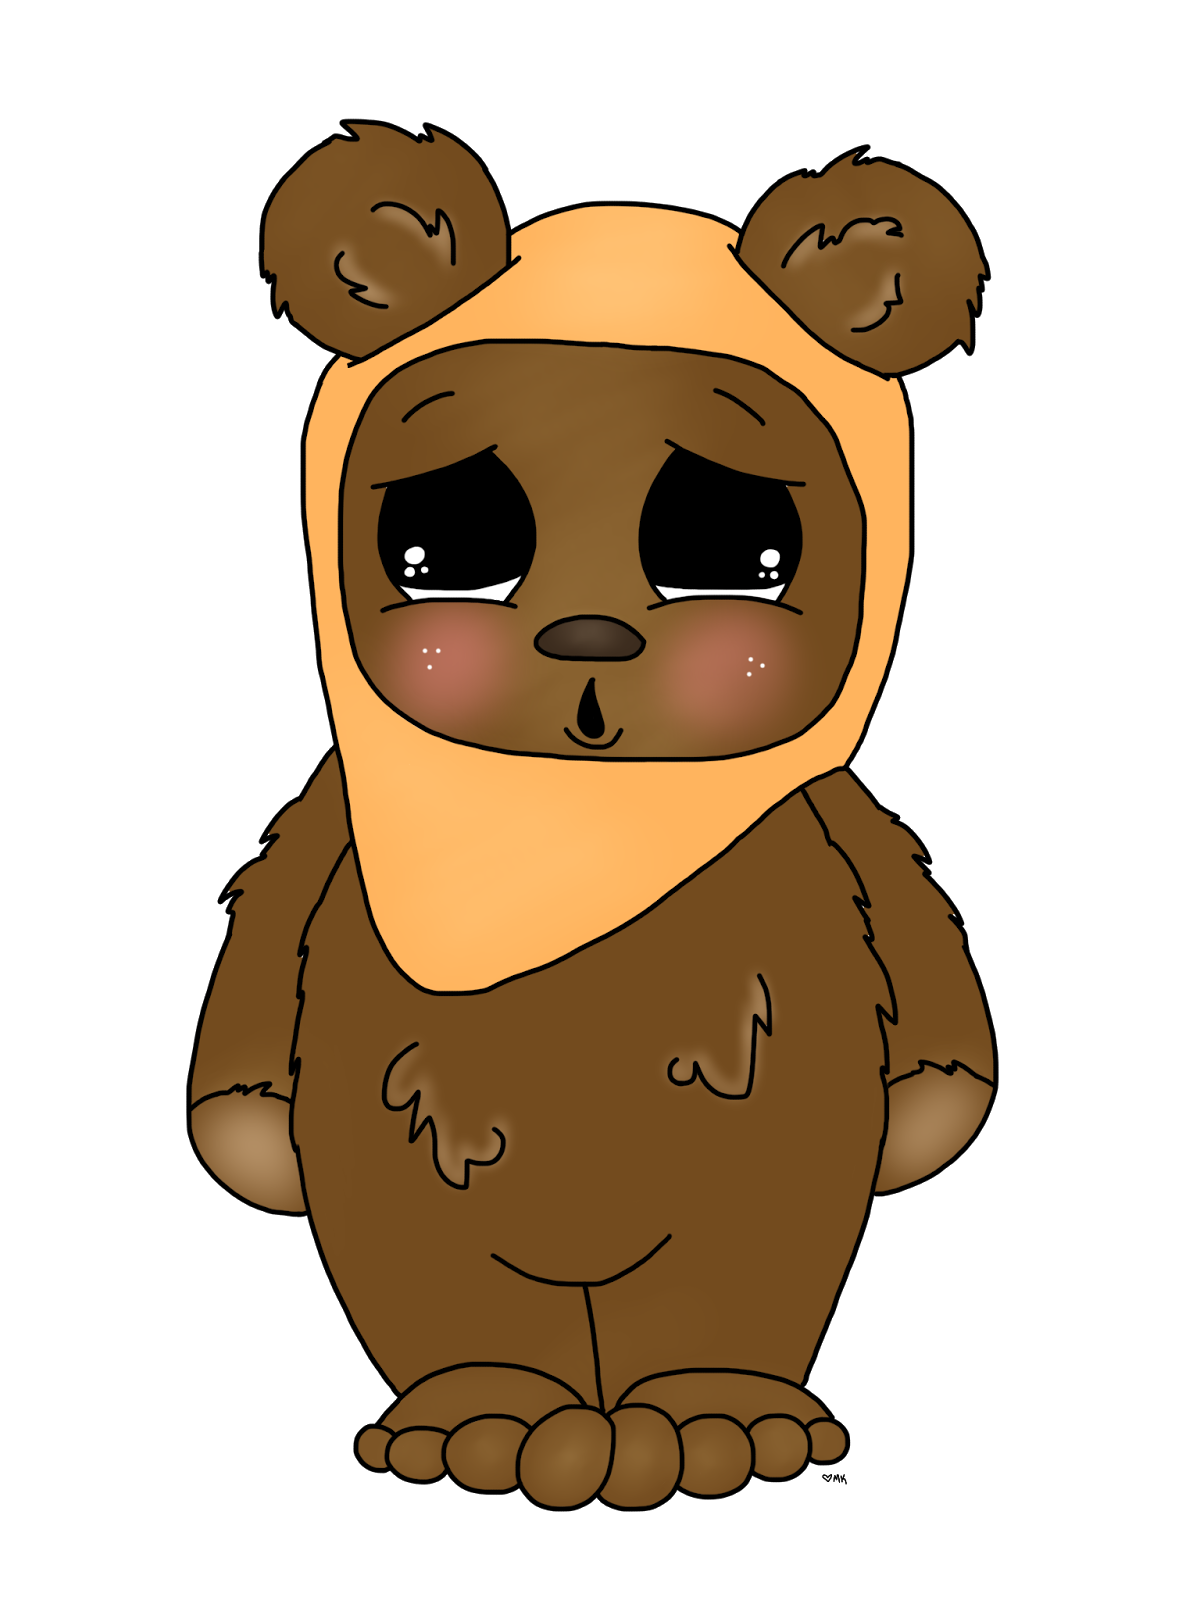 Star wars ewok clipart jpg royalty free download Cre8tive Hands: What is next?? jpg royalty free download